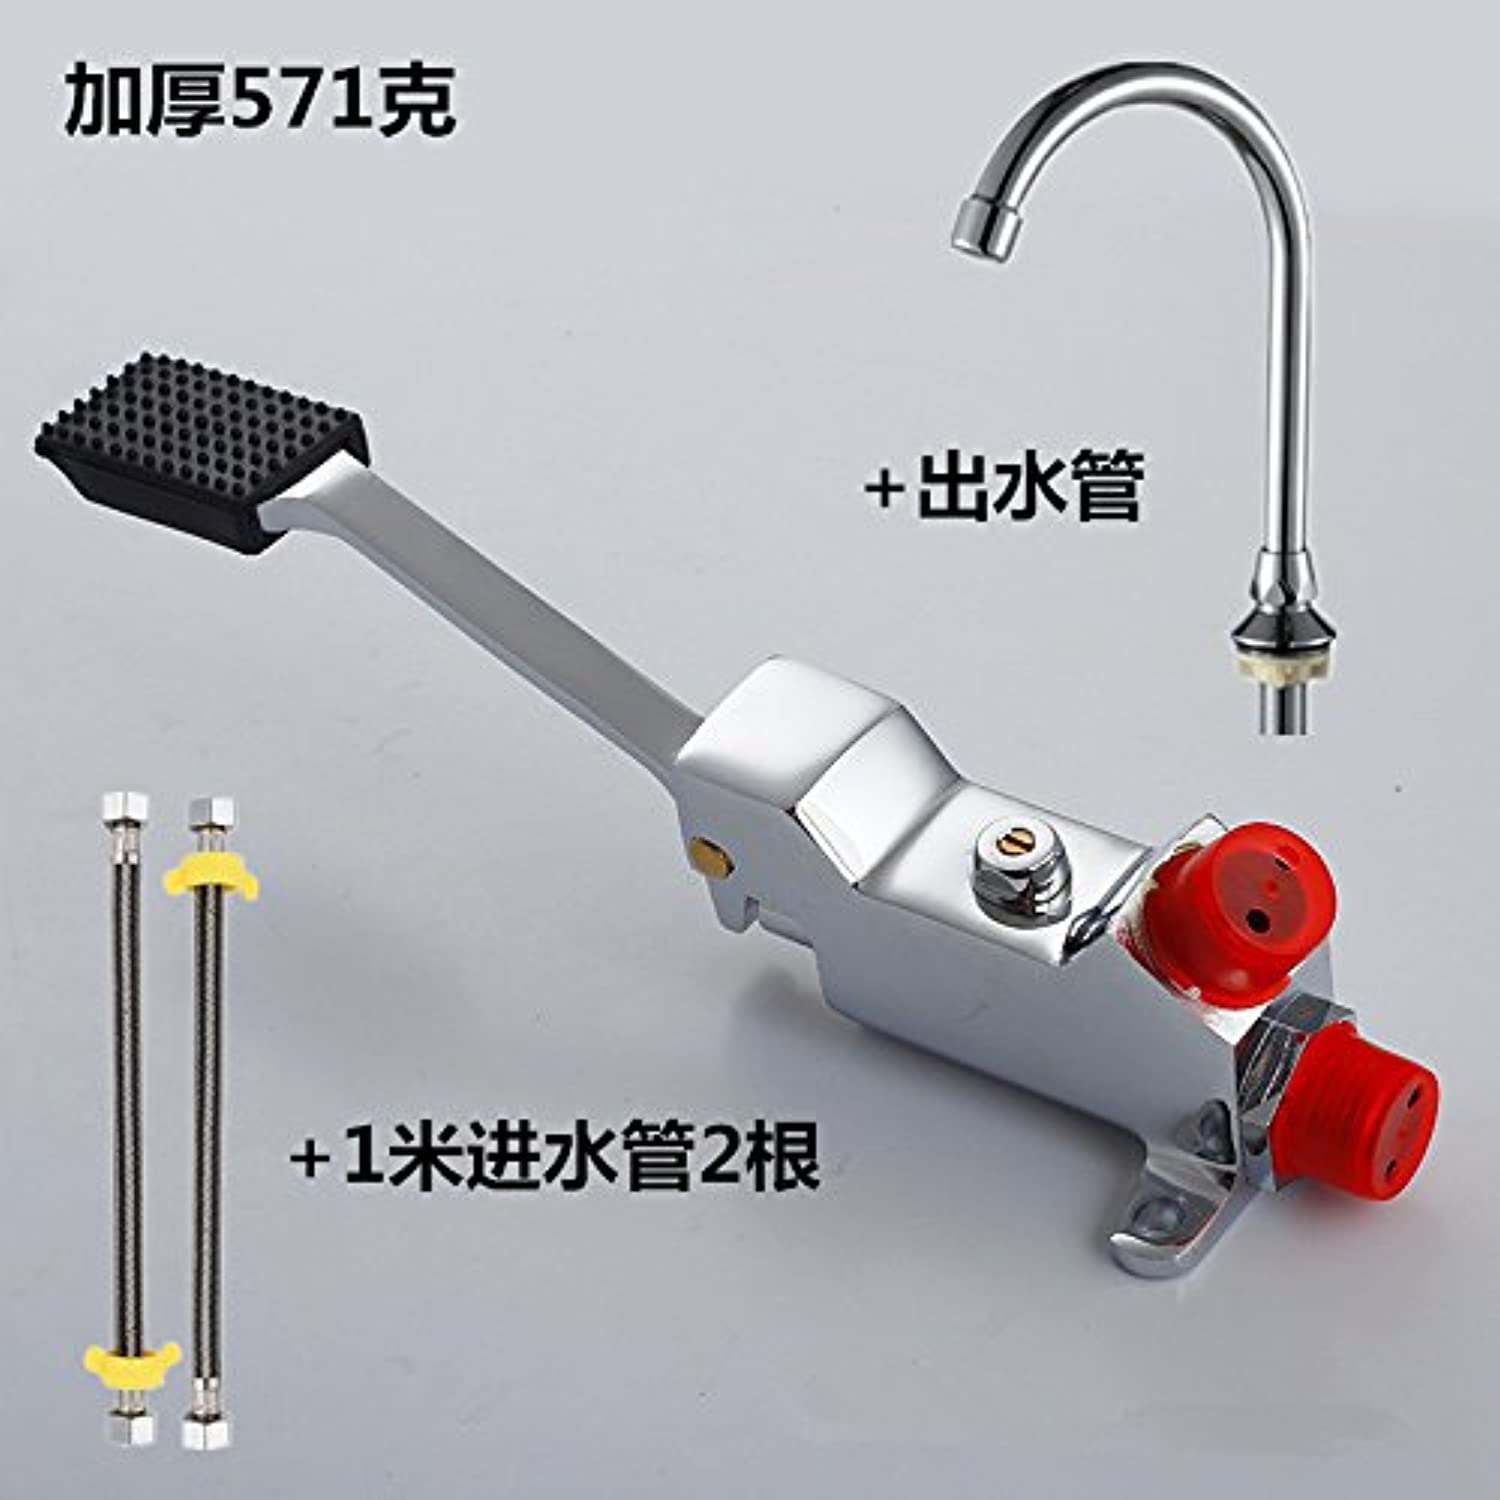 JWLT Foot tap, switch valve, all copper foot pedal basin faucet, laboratory hospital, foot tap,2 roots of 1 meter pipe with a regulating valve plus an outlet pipe